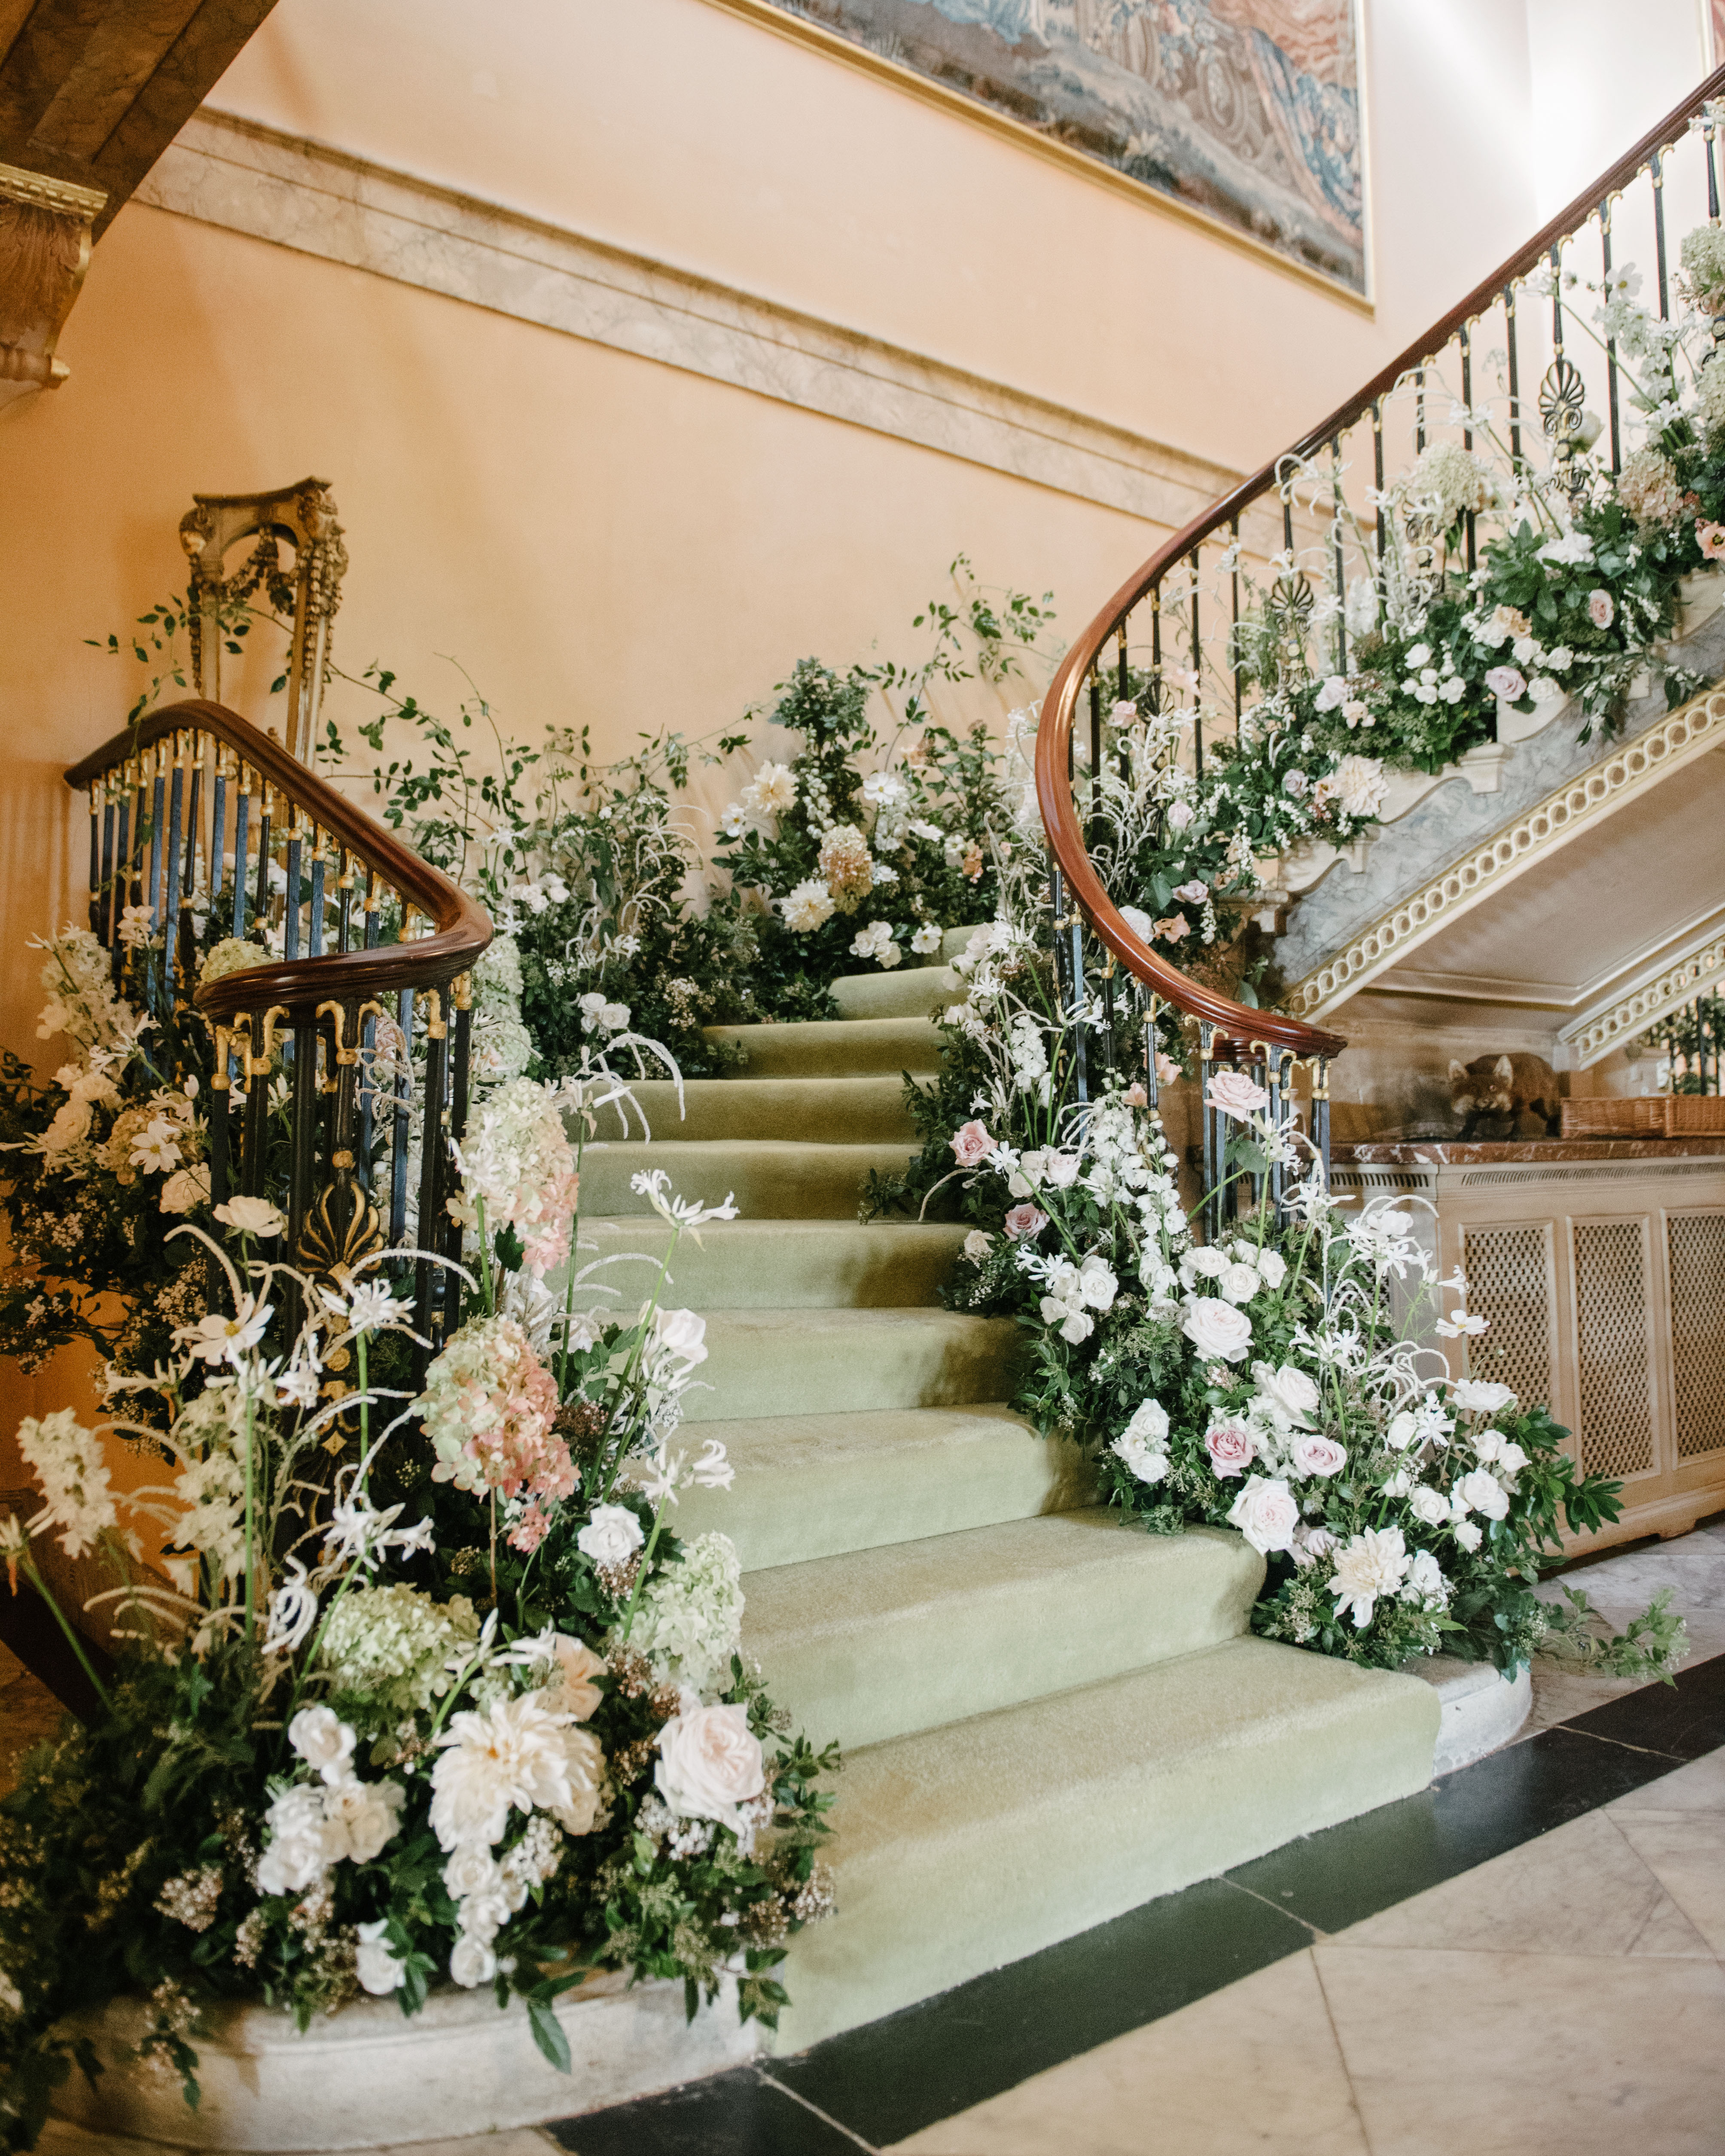 winding stairs banister flowers and greenery decor